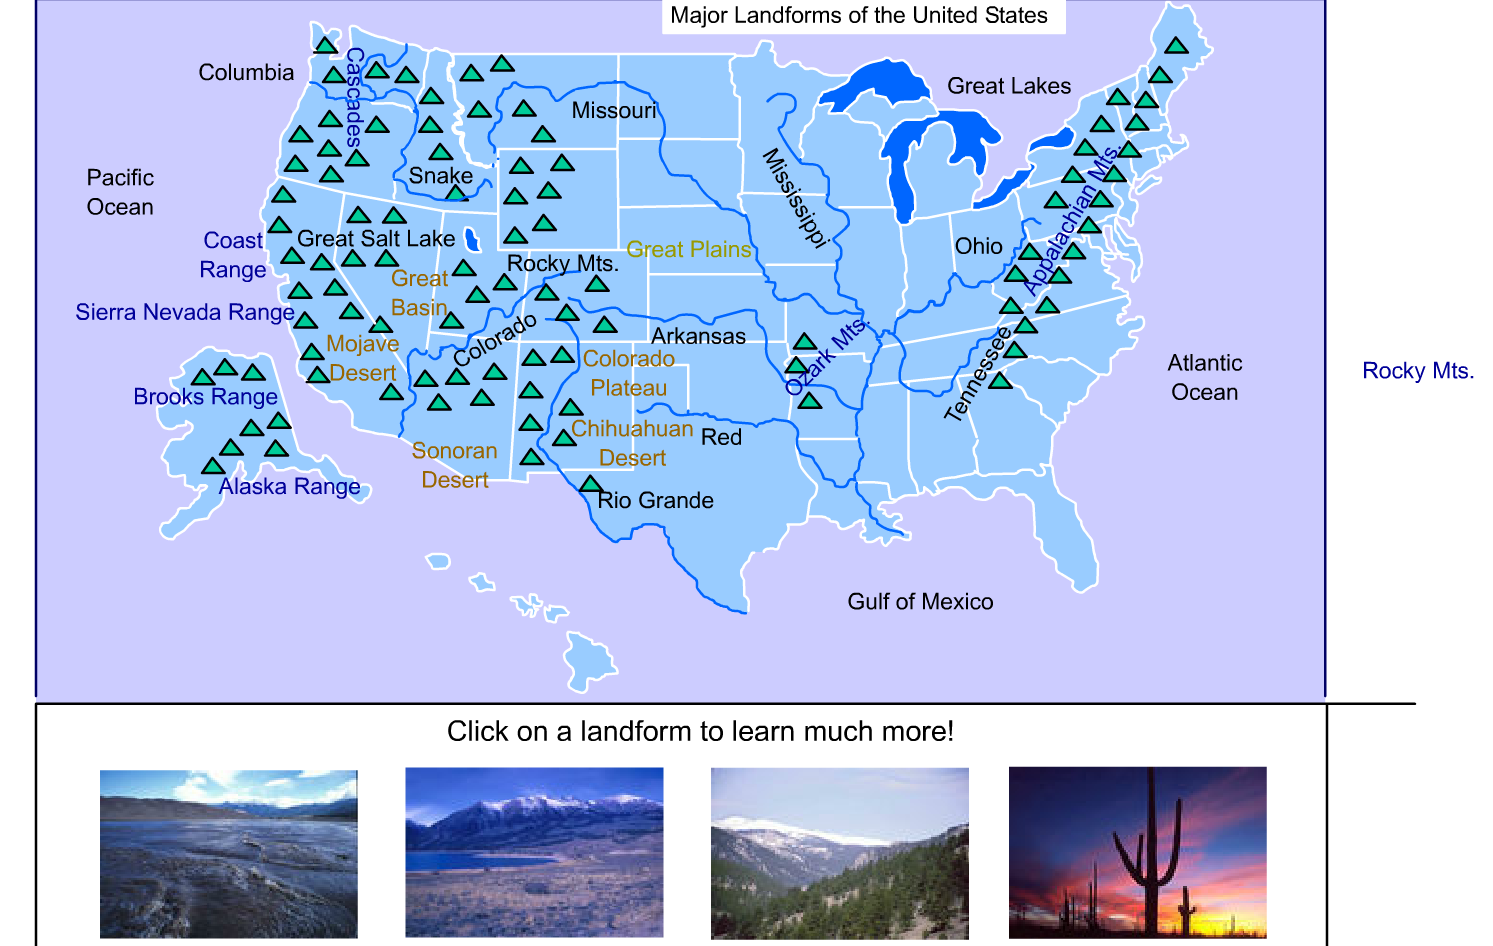 16 Geography Major Landforms Of The United States